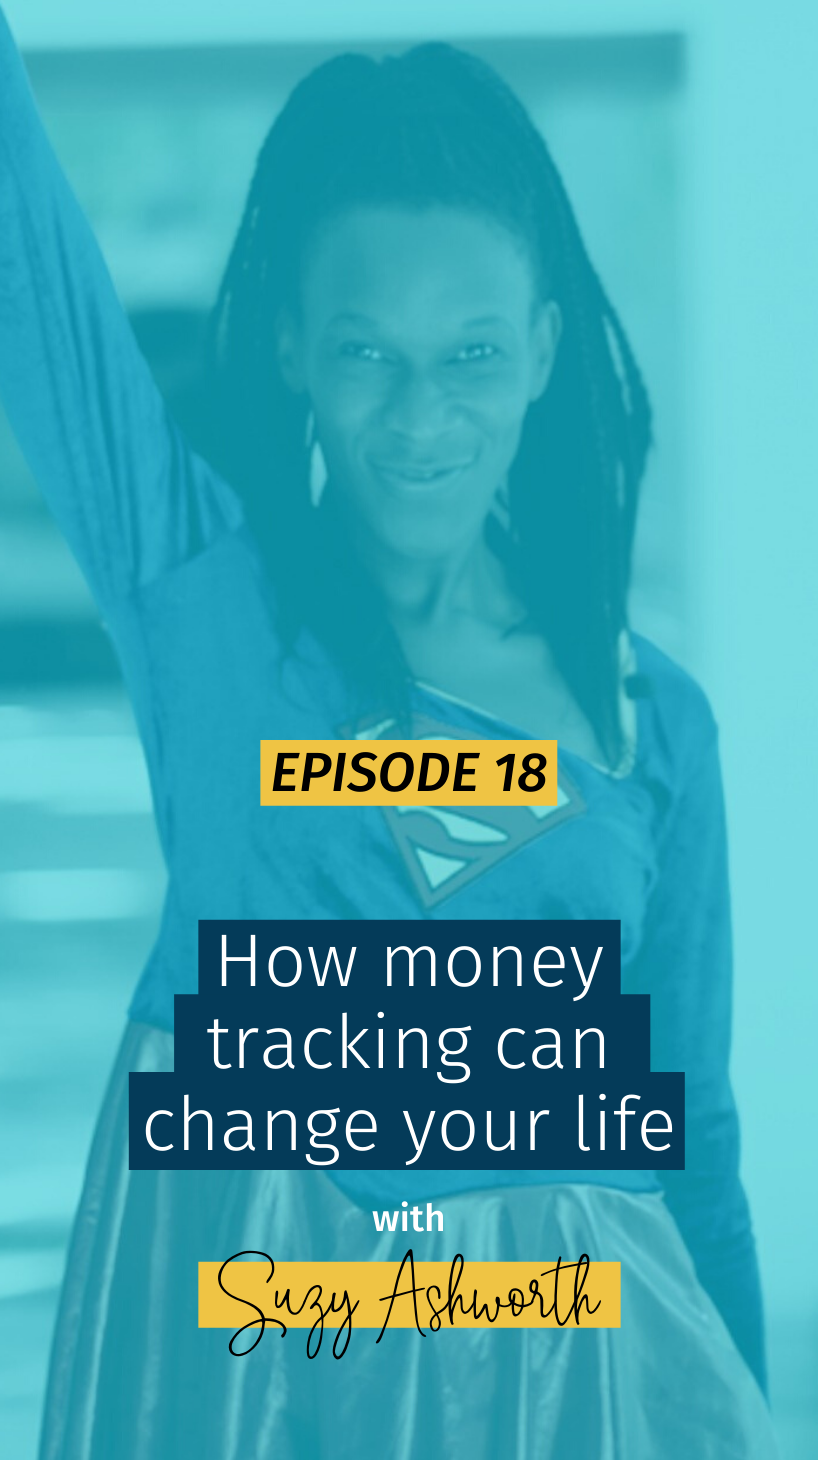 018 How money tracking can change your life